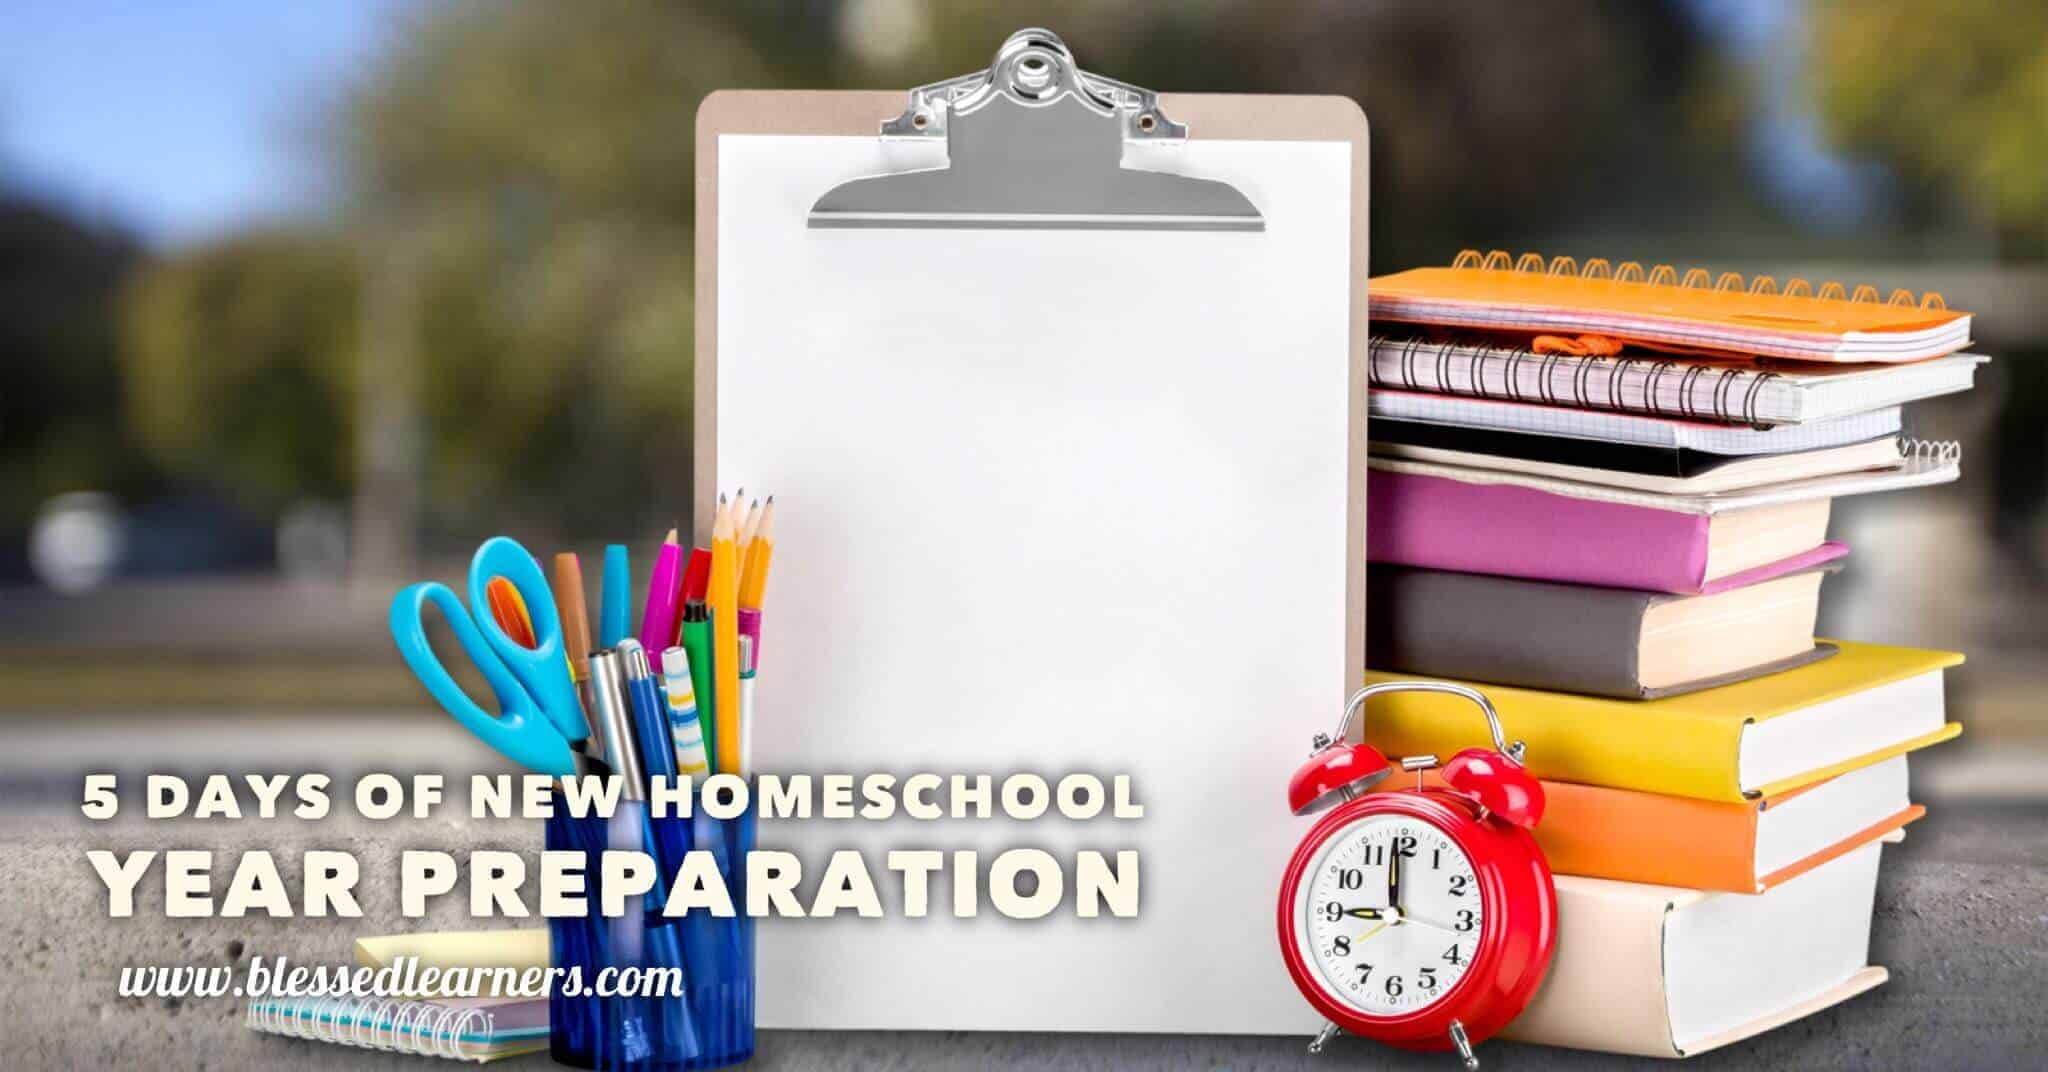 5 Days of New Homeschooling Year Preparation